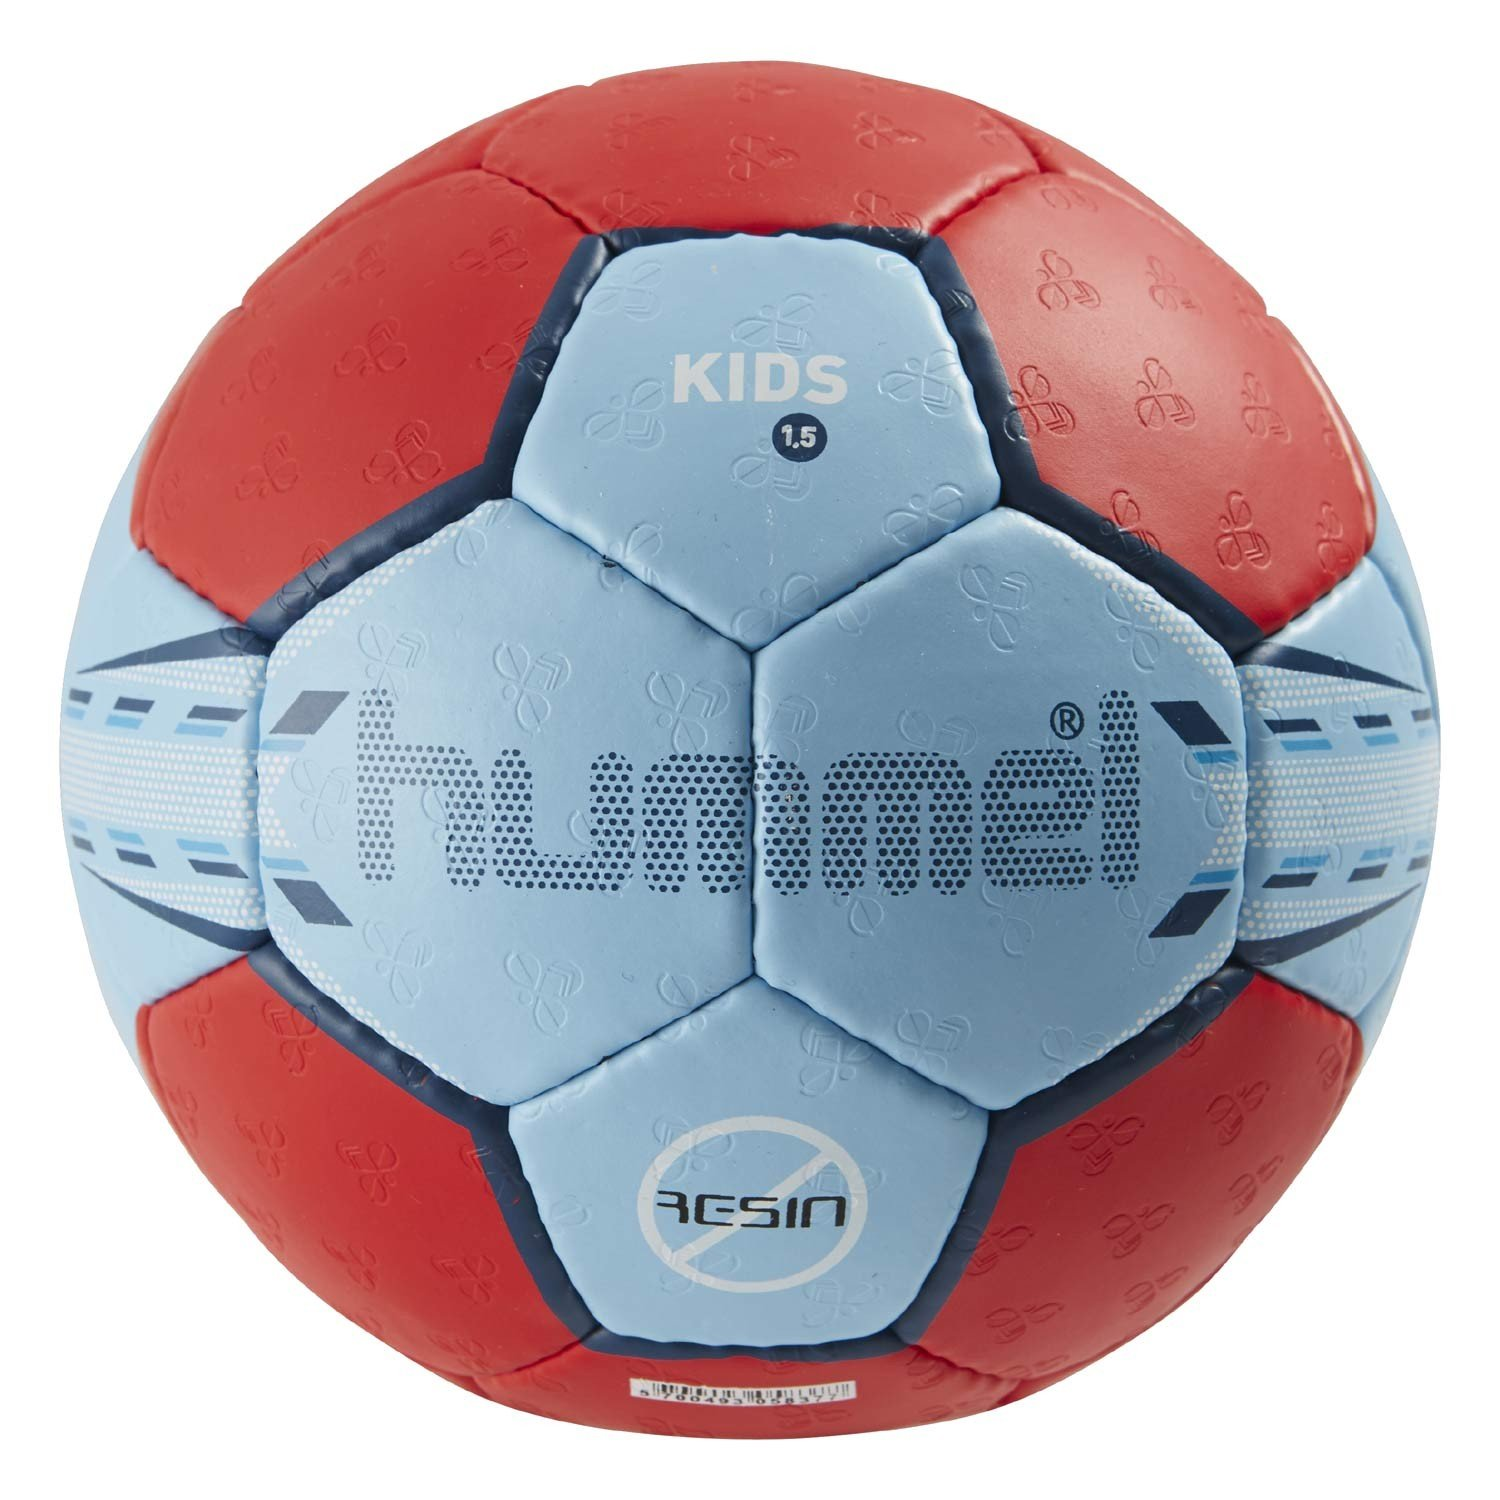 Hummel 1,5 Kids - Pelota de balonmano, color - light blue/red ...